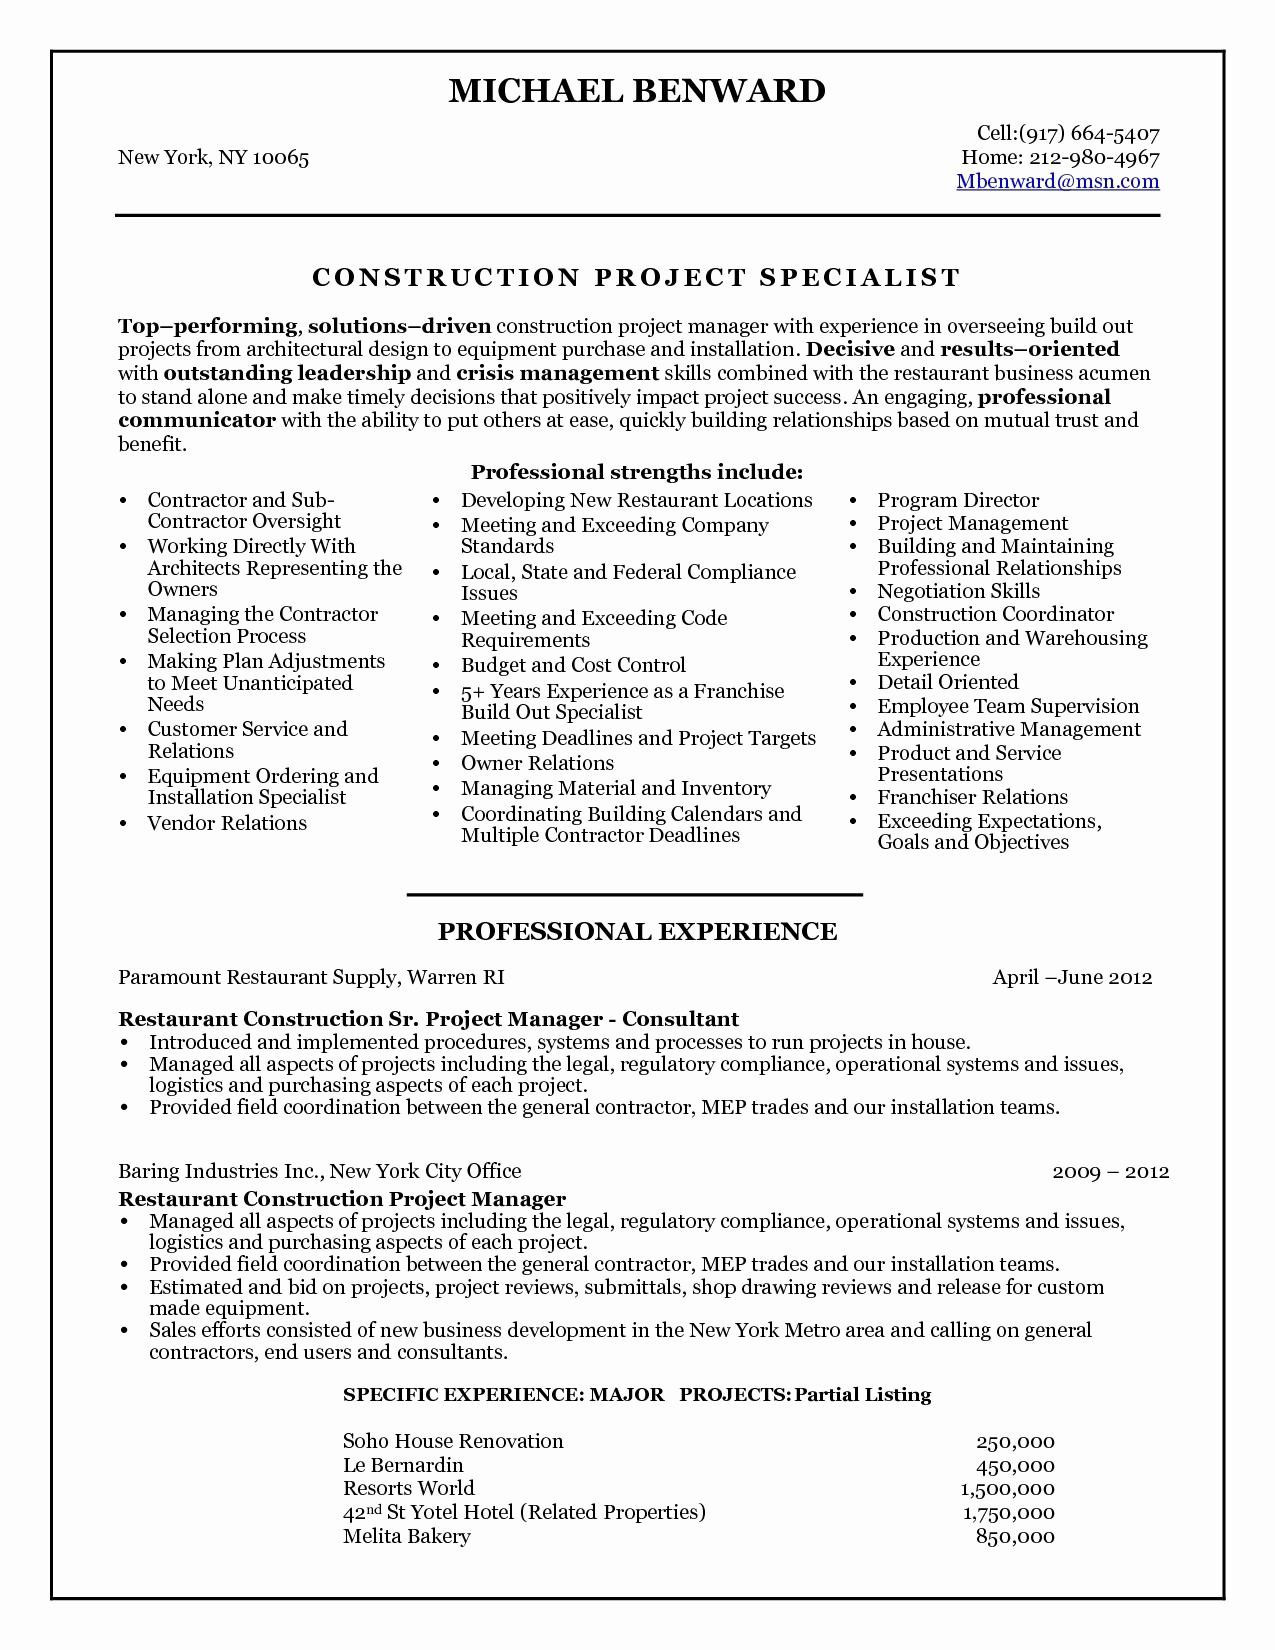 Property Manager Resume Objectives - 48 Valuable Construction Resume Objective